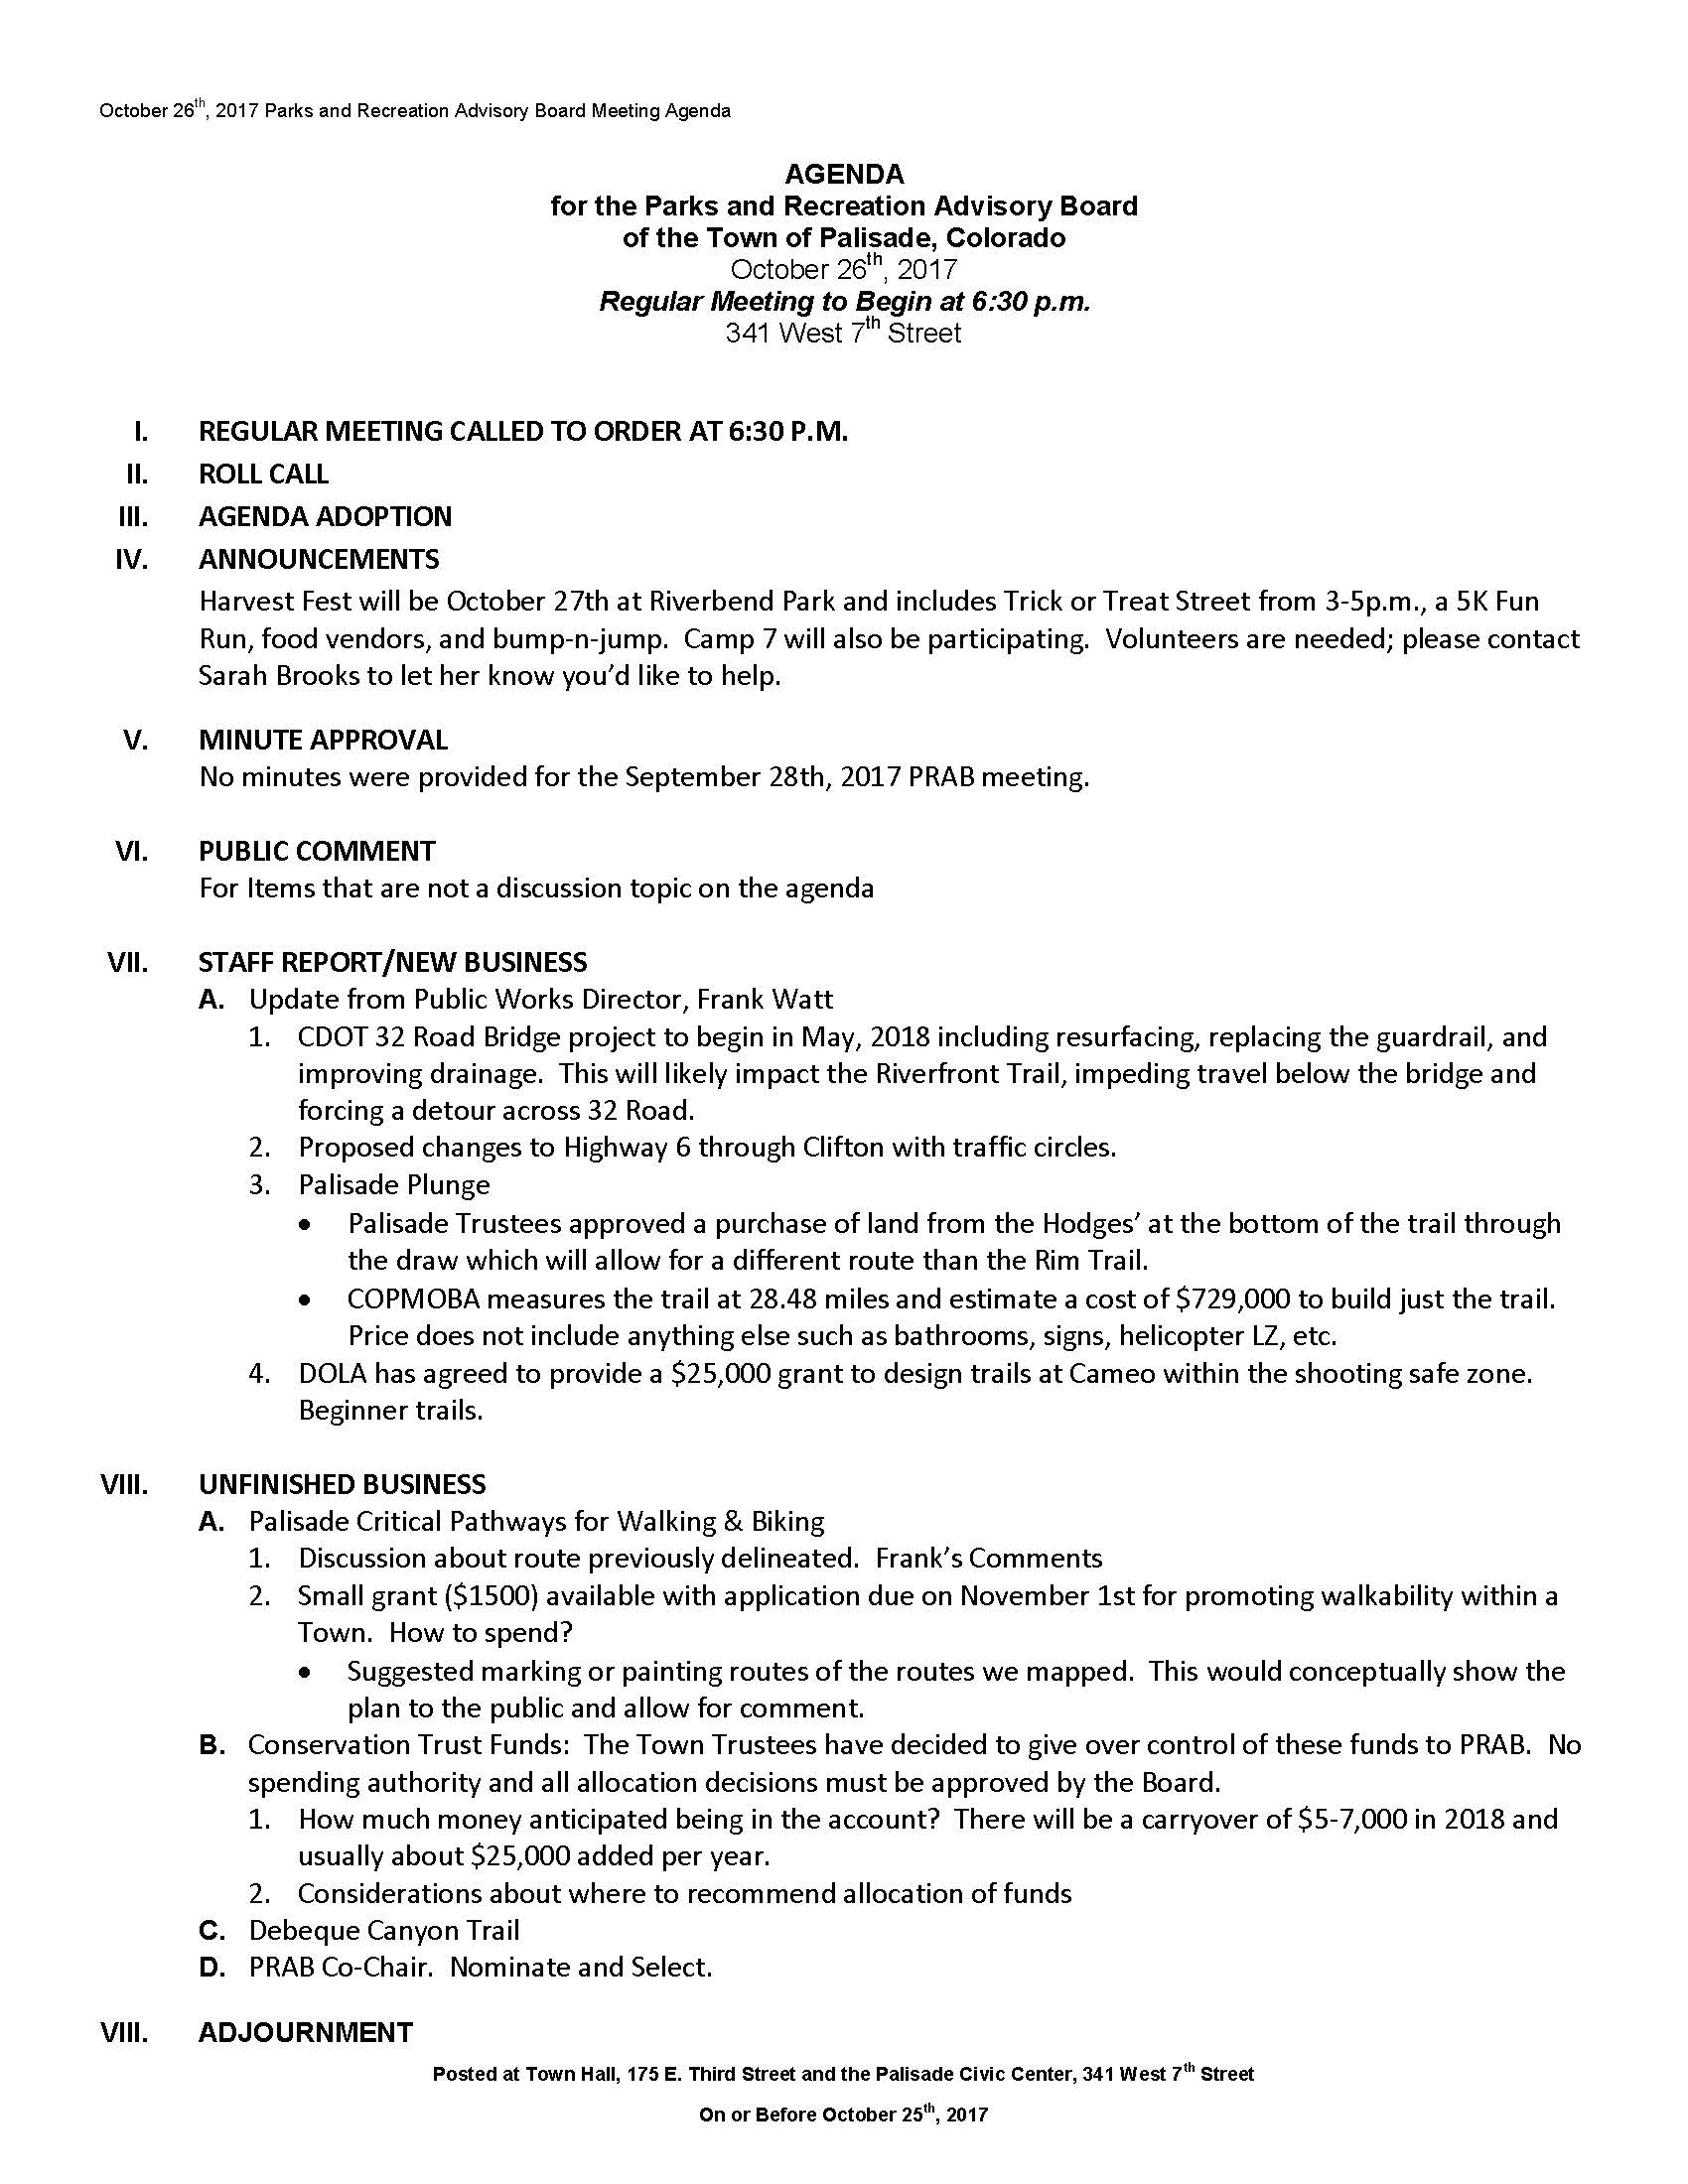 October 26th 2017 PRAC Meeting Agenda Page 1